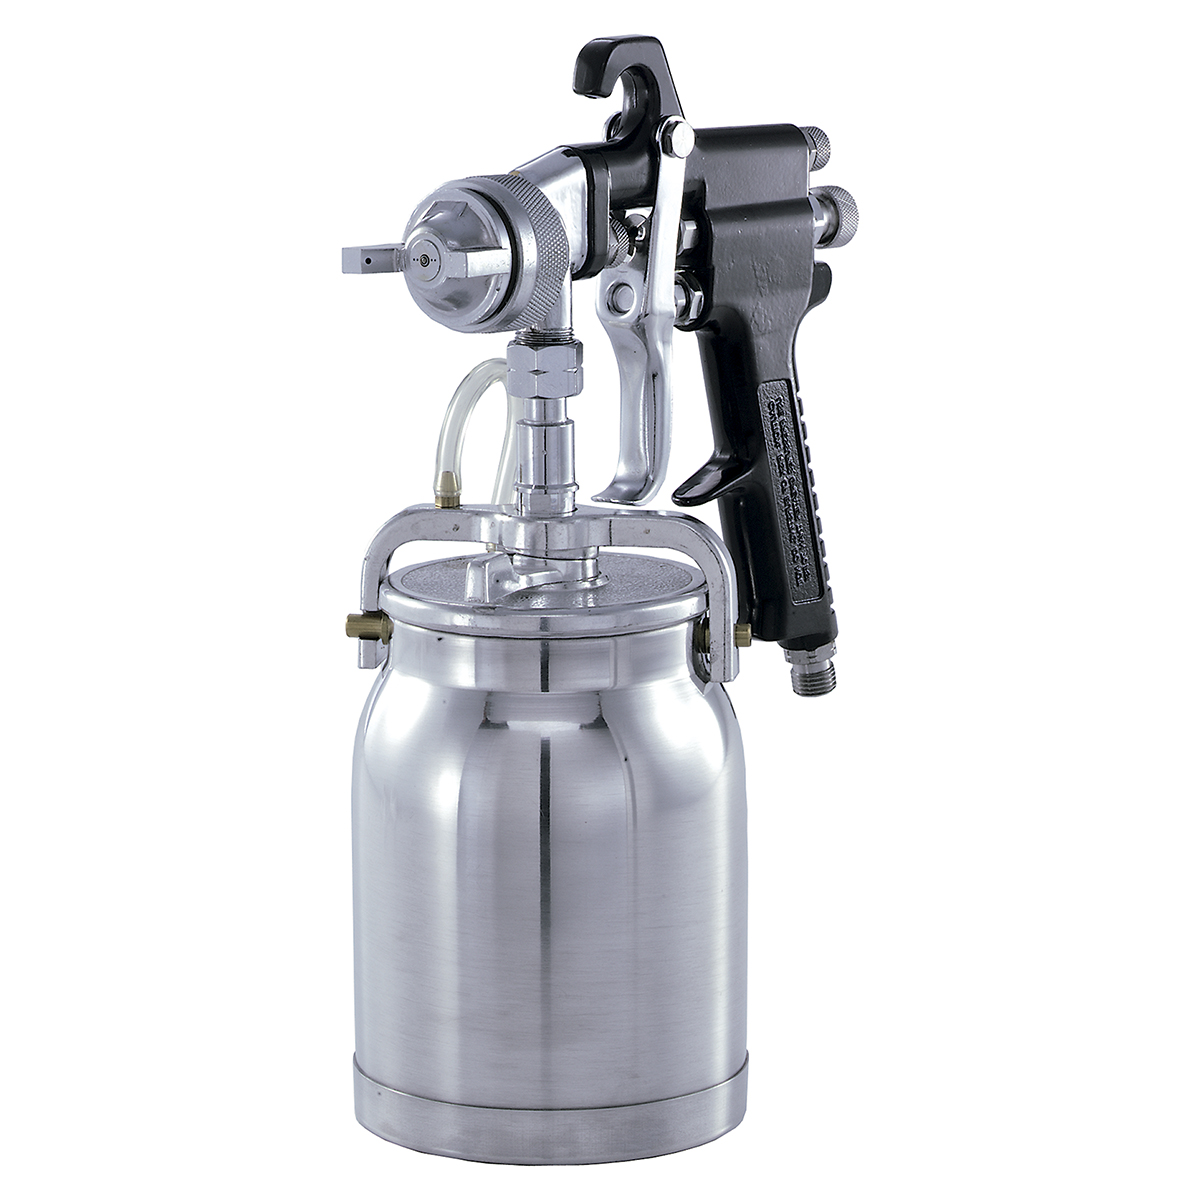 Spray Gun with REV Canister (DH650001AV)